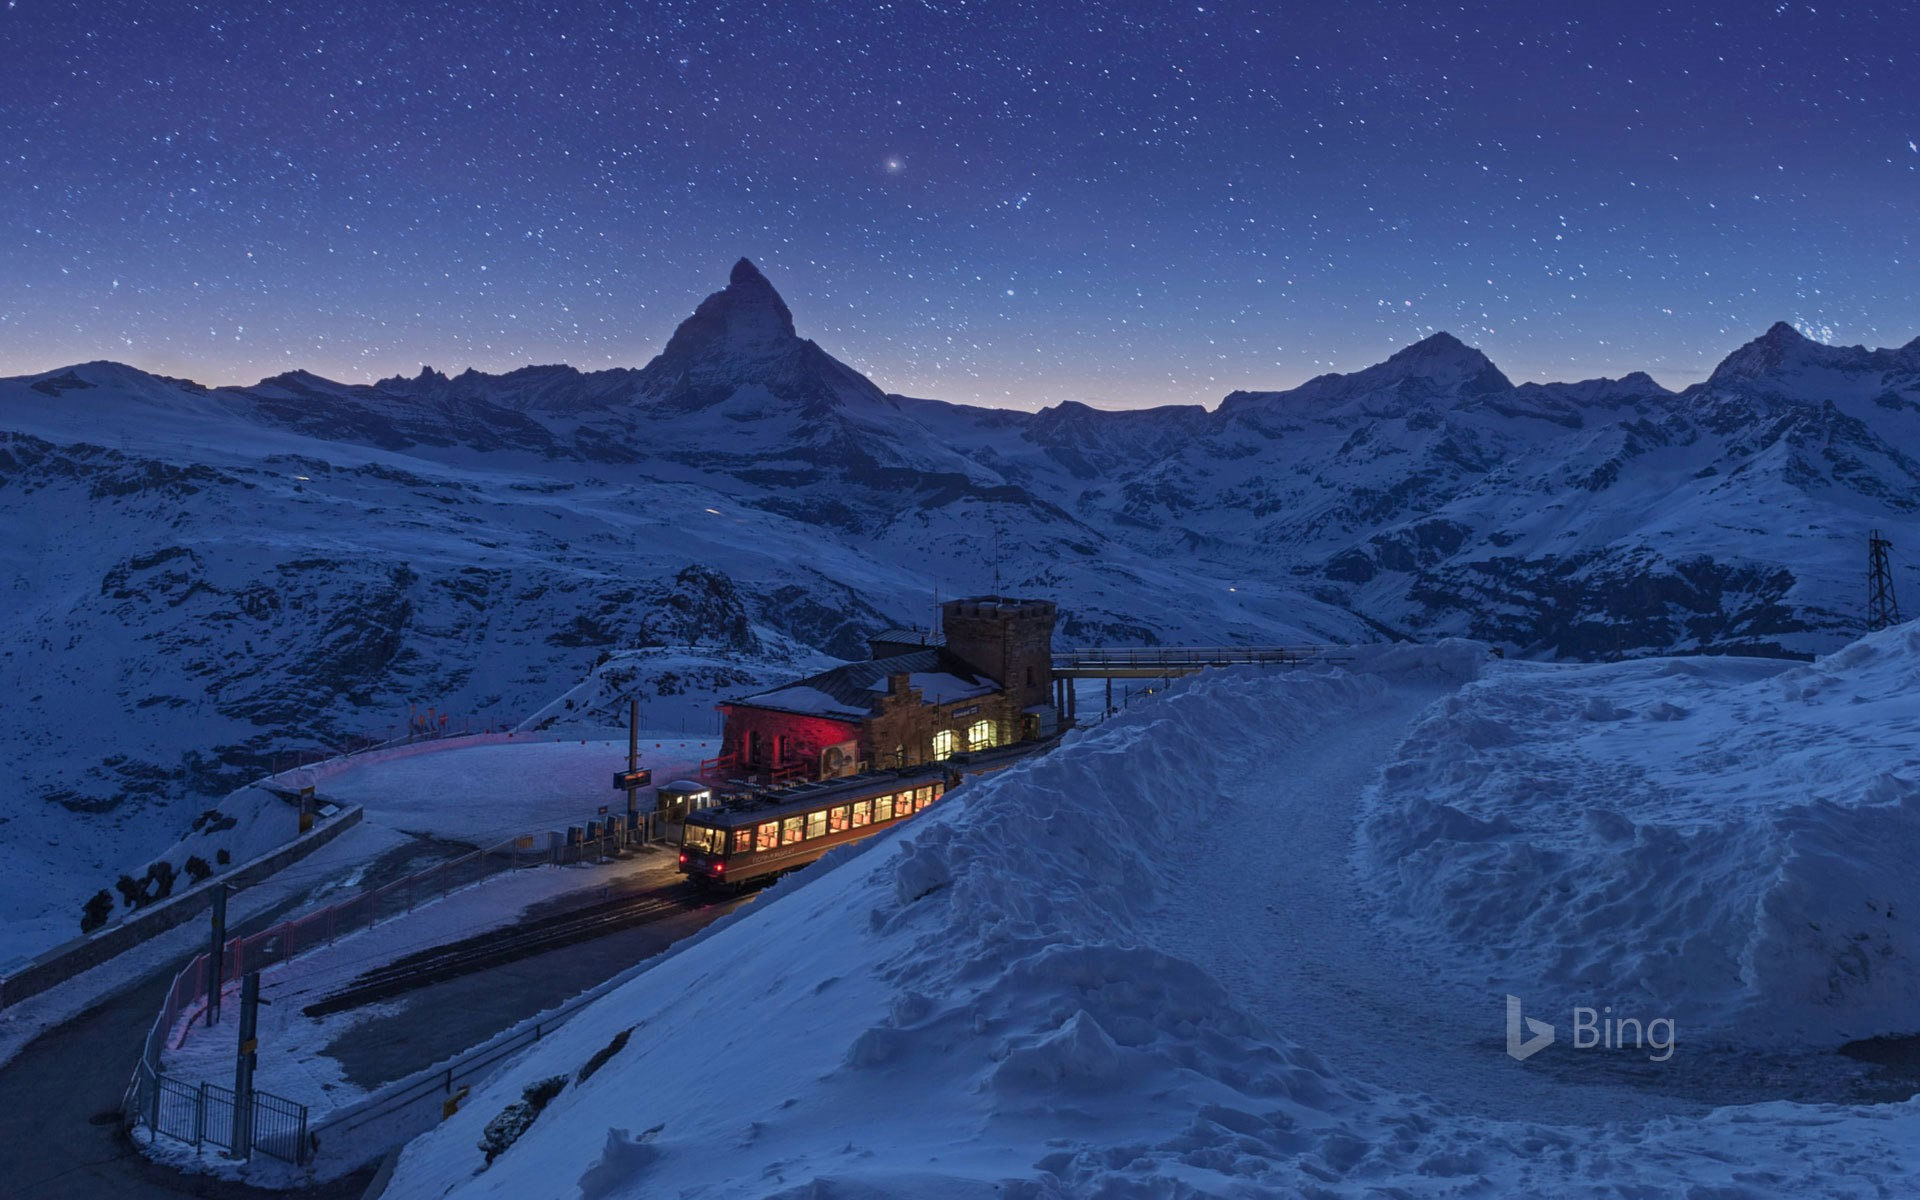 Gornergrat railway station and the Matterhorn in Zermatt, Switzerland